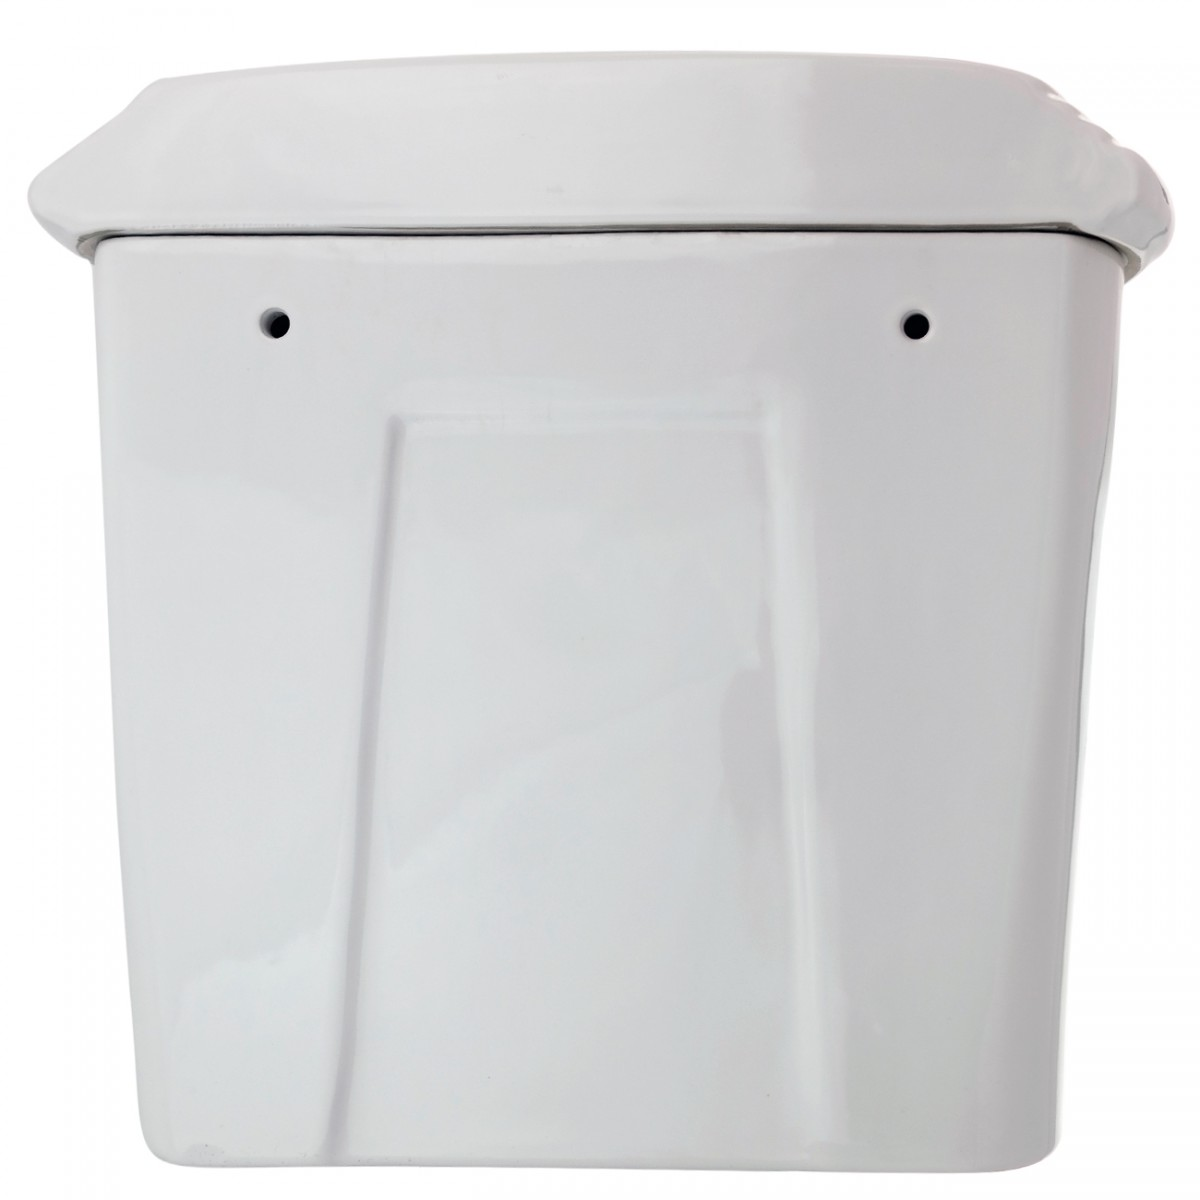 White Ceramic Tank High Tank Toilets With Round Bowl and Satin Finish L Pipe High Tank Pull Chain Toilets Round Bowl High Tank Toilet Old Fashioned Toilet